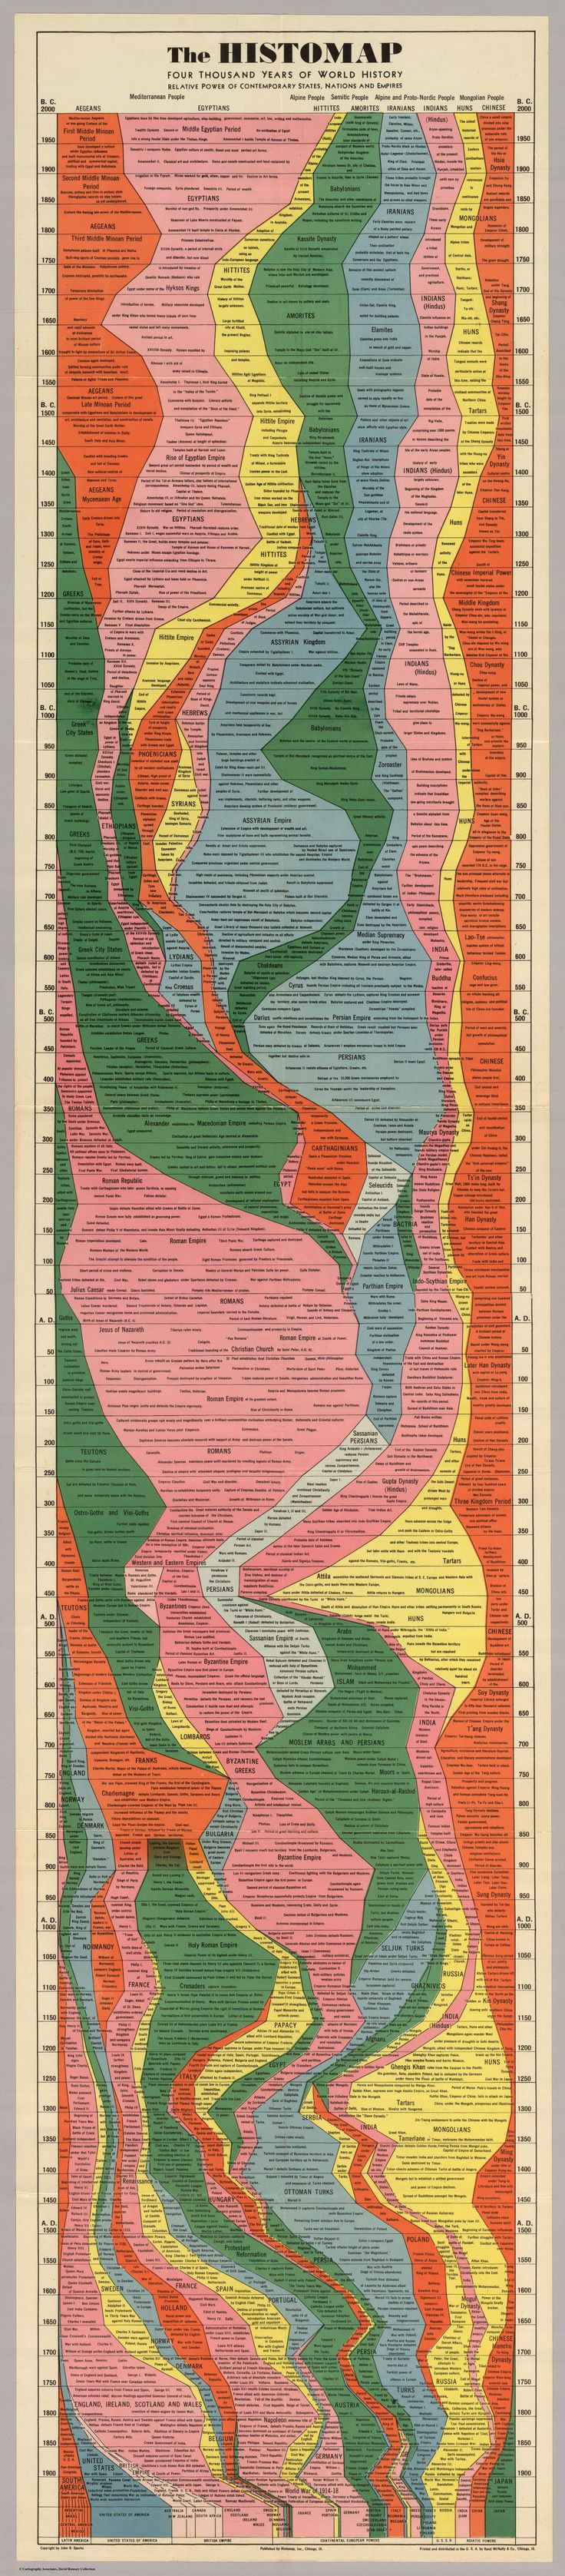 """Histomap,"" created by John B. Sparks, was first printed by Rand McNally in 1931. It shows the entire history of the world distilled into a single gorgeous chart via The Slate"